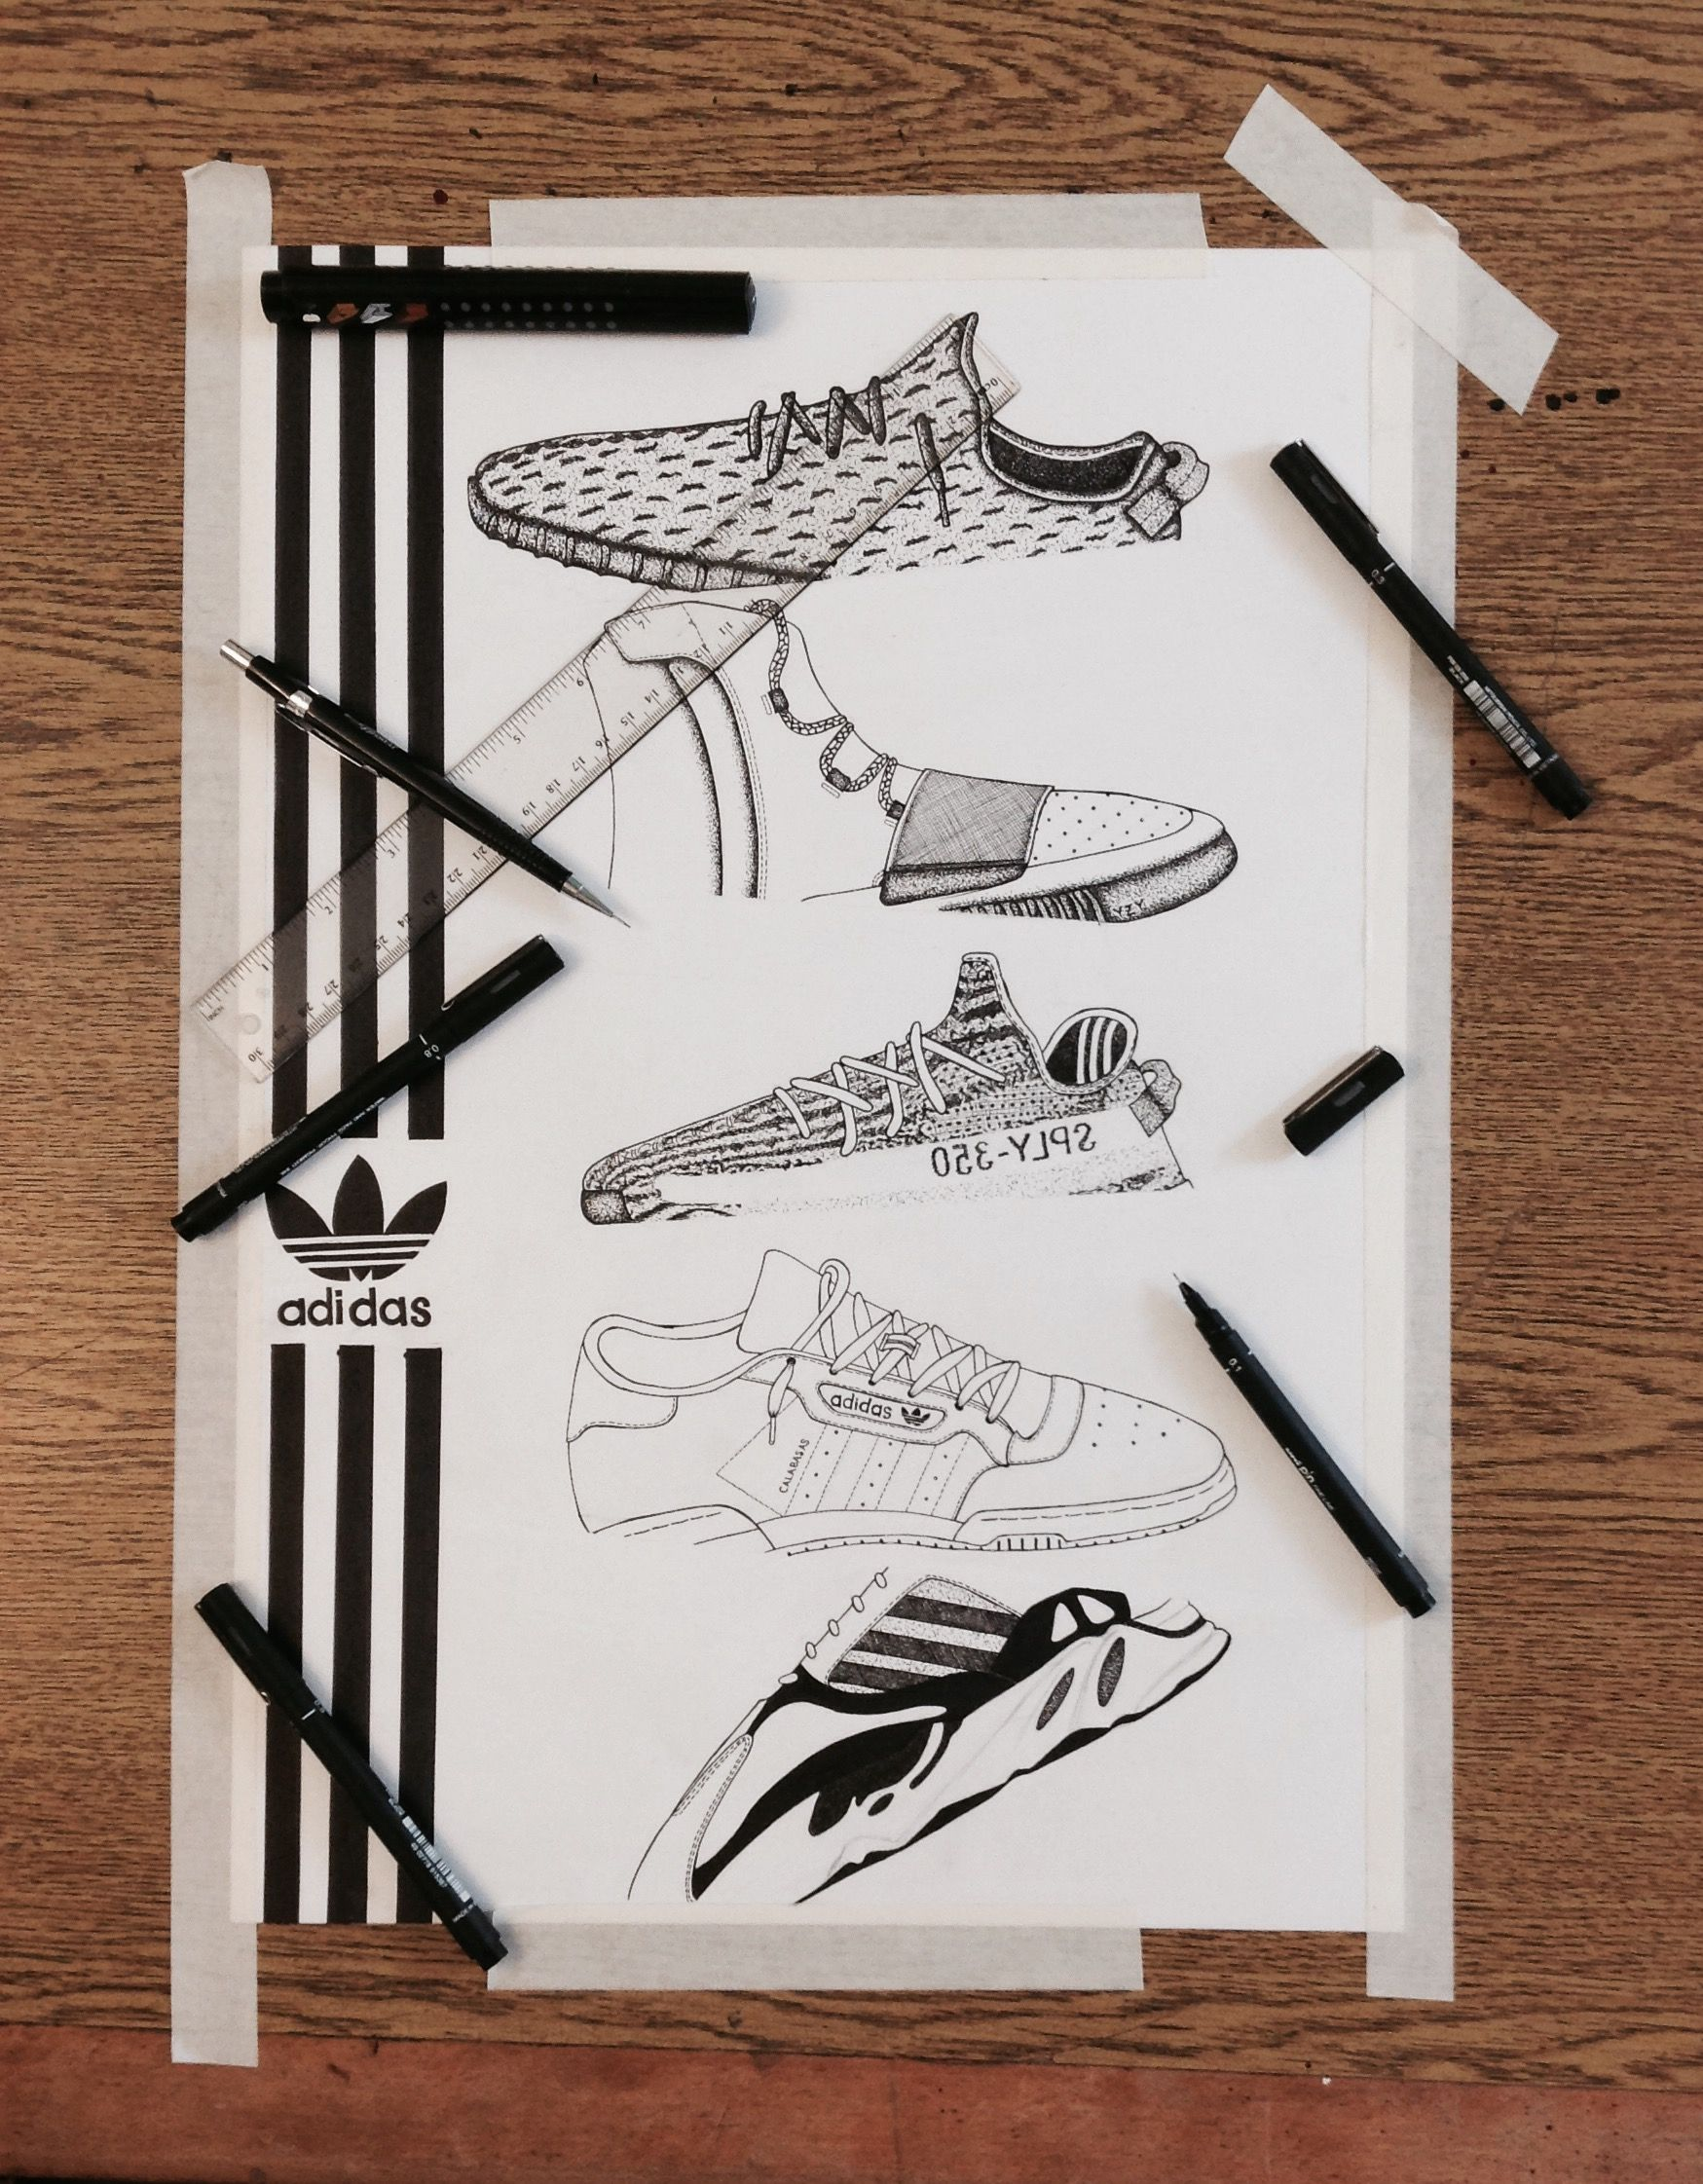 a83a36c502e1d Adidas YEEZY BOOST  art  artwork  artist  drawing  draw  painting  artist   sketch  streetwear  yeezy  adidas originals  adidas  kanyewest  ink  hype  ...